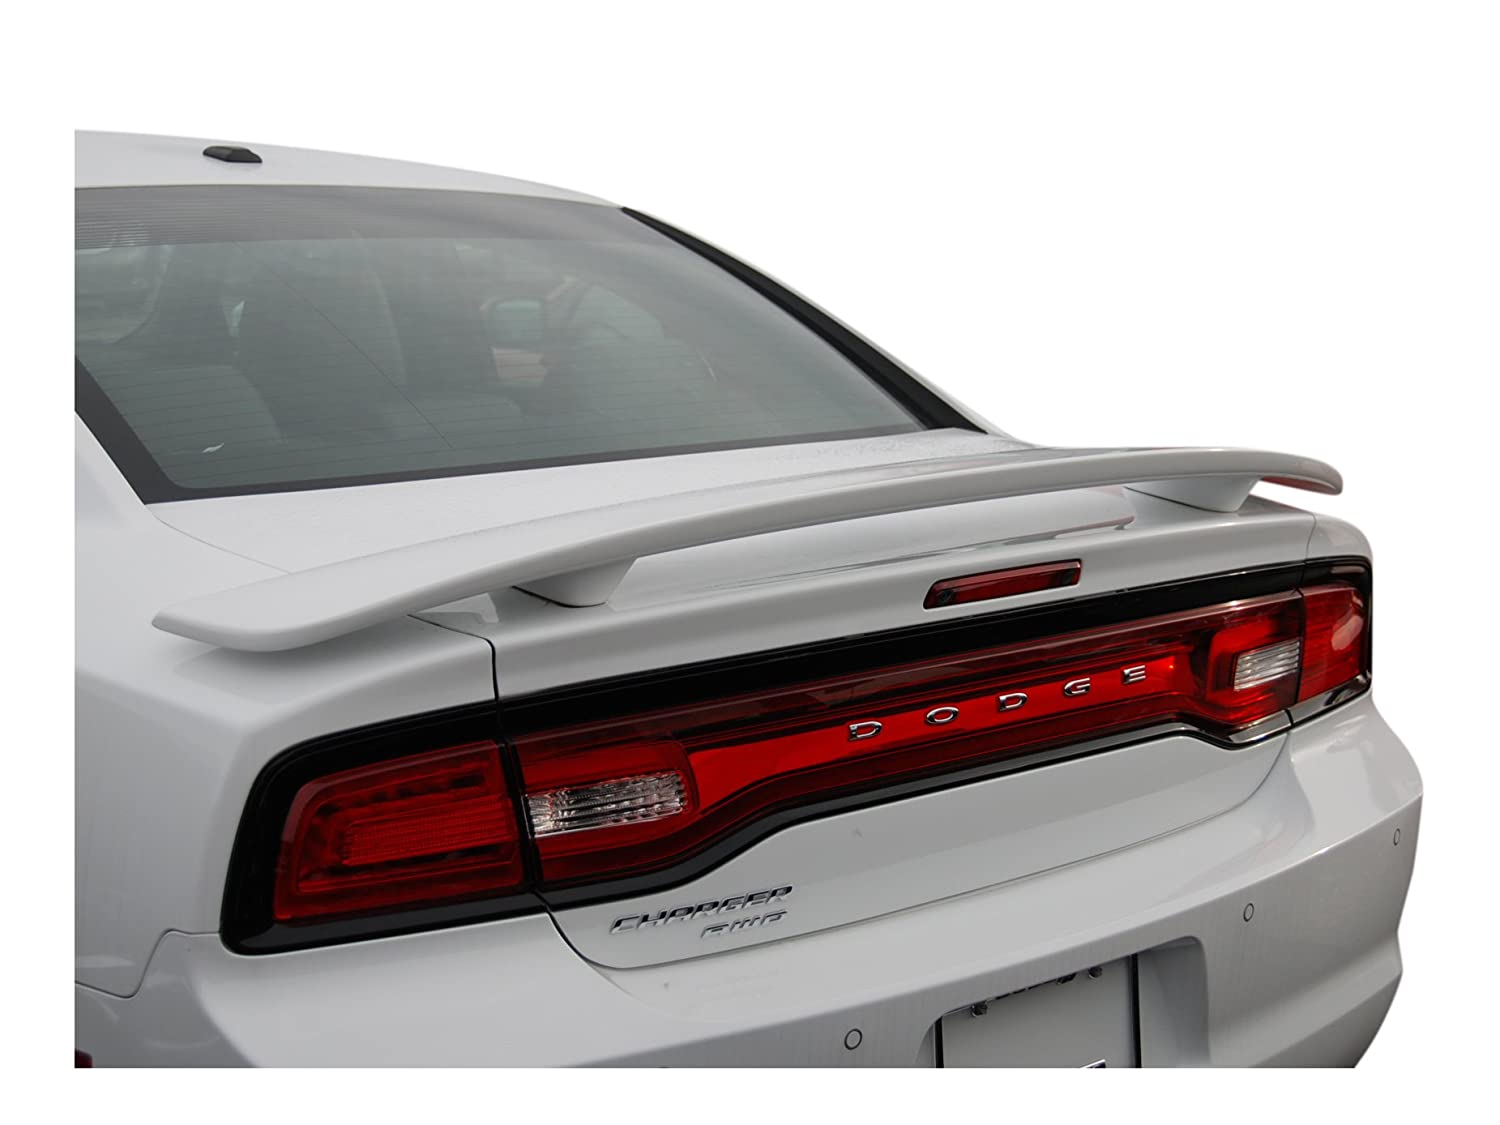 Painted Factory Style Spoiler fits the Charger 501 PBV